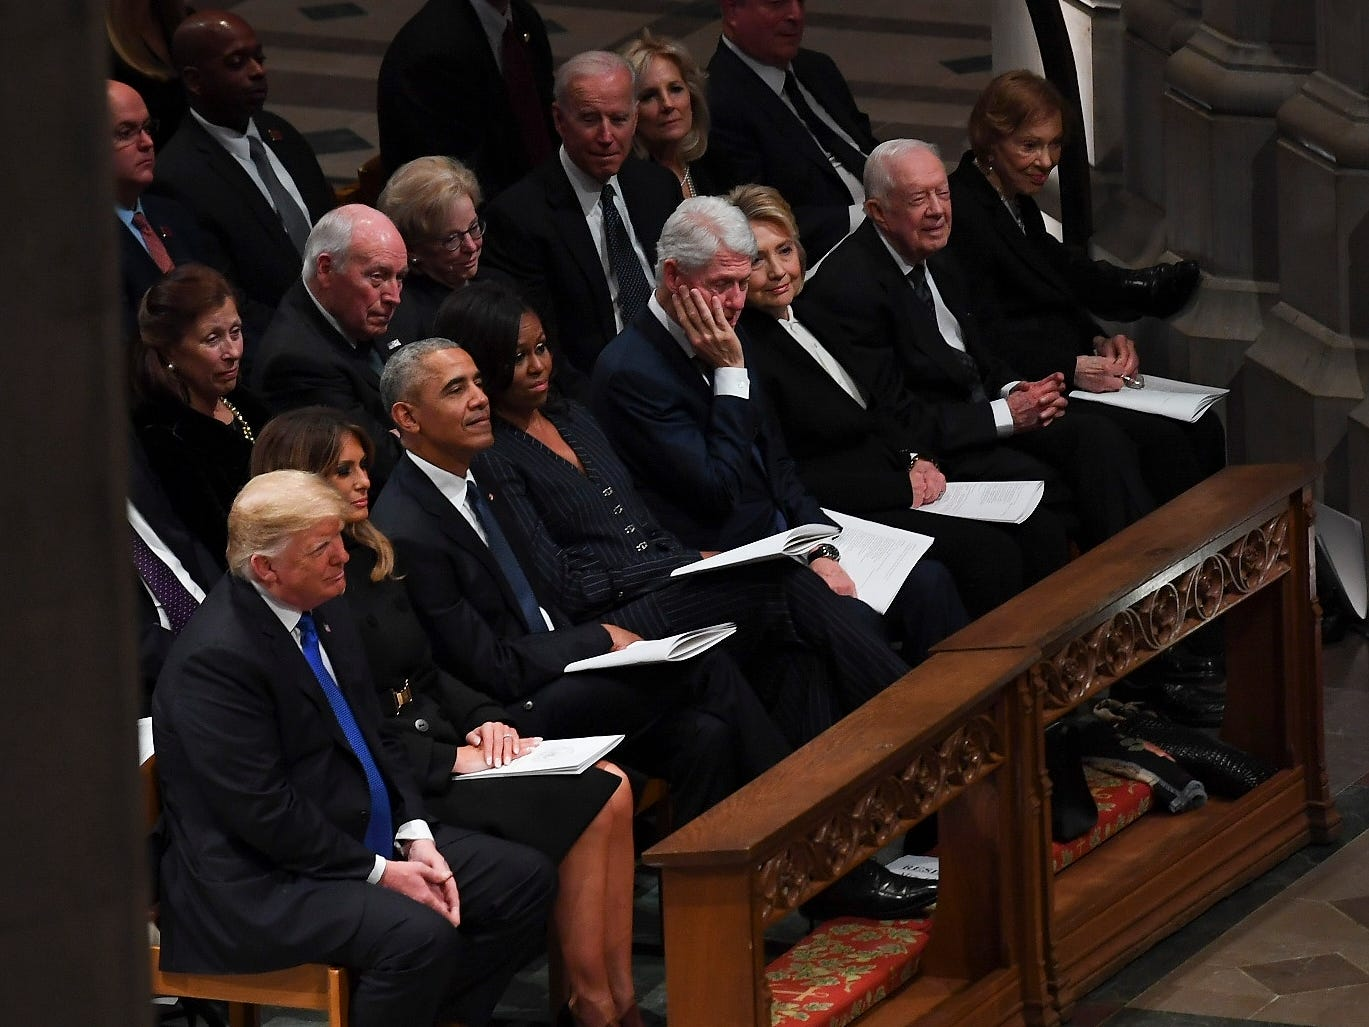 President Donald Trump, first lady Melania Trump, former President Barack Obama, Michelle Obama, former President Bill Clinton, former Secretary of State Hillary Clinton, former President Jimmy Carter and Rosalynn Carter, listen during a State Funeral for former President George H.W. Bush at the Washington National Cathedral, Dec. 5, 2018, in Washington.